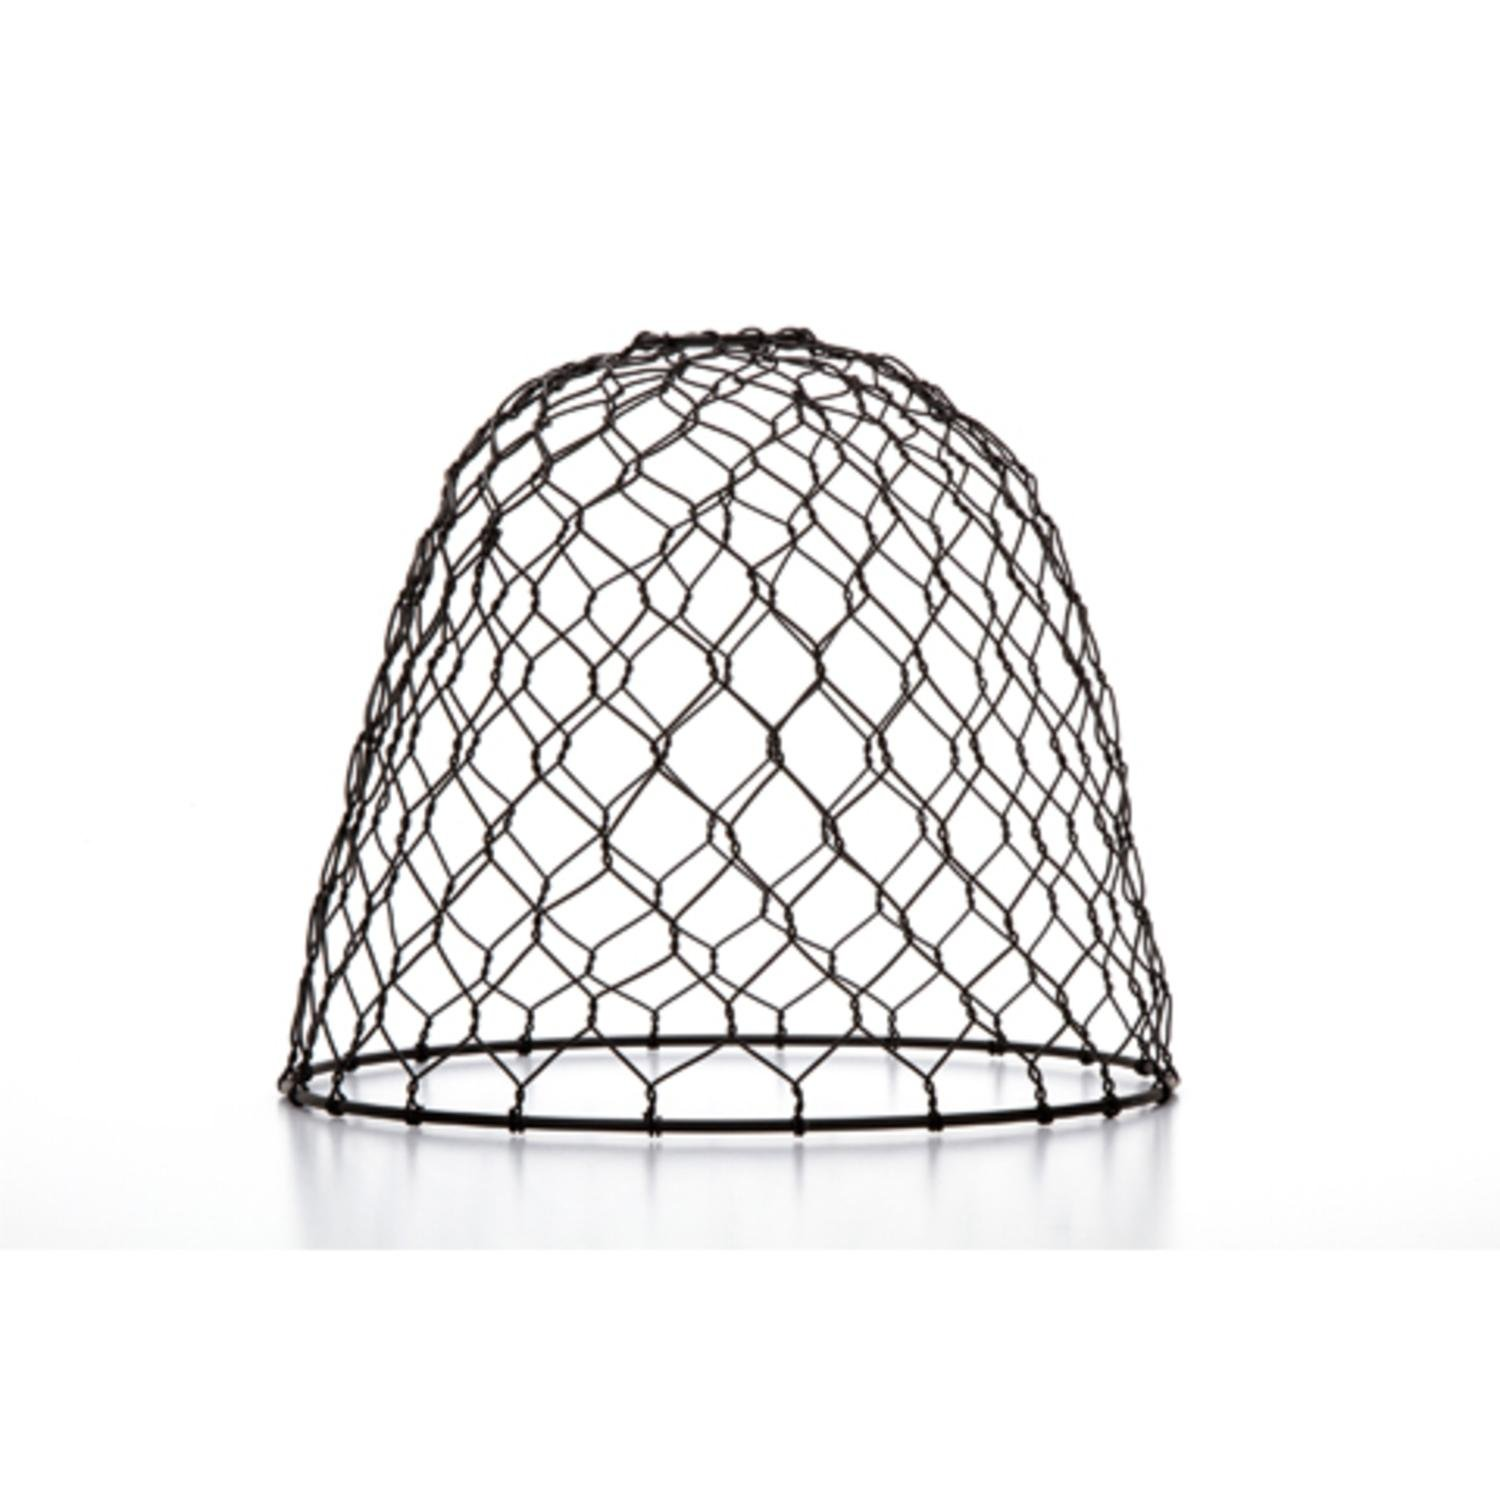 10 cleveland vintage lighting black chicken wire dome lamp shade 10 cleveland vintage lighting black chicken wire dome lamp shade amazon greentooth Gallery